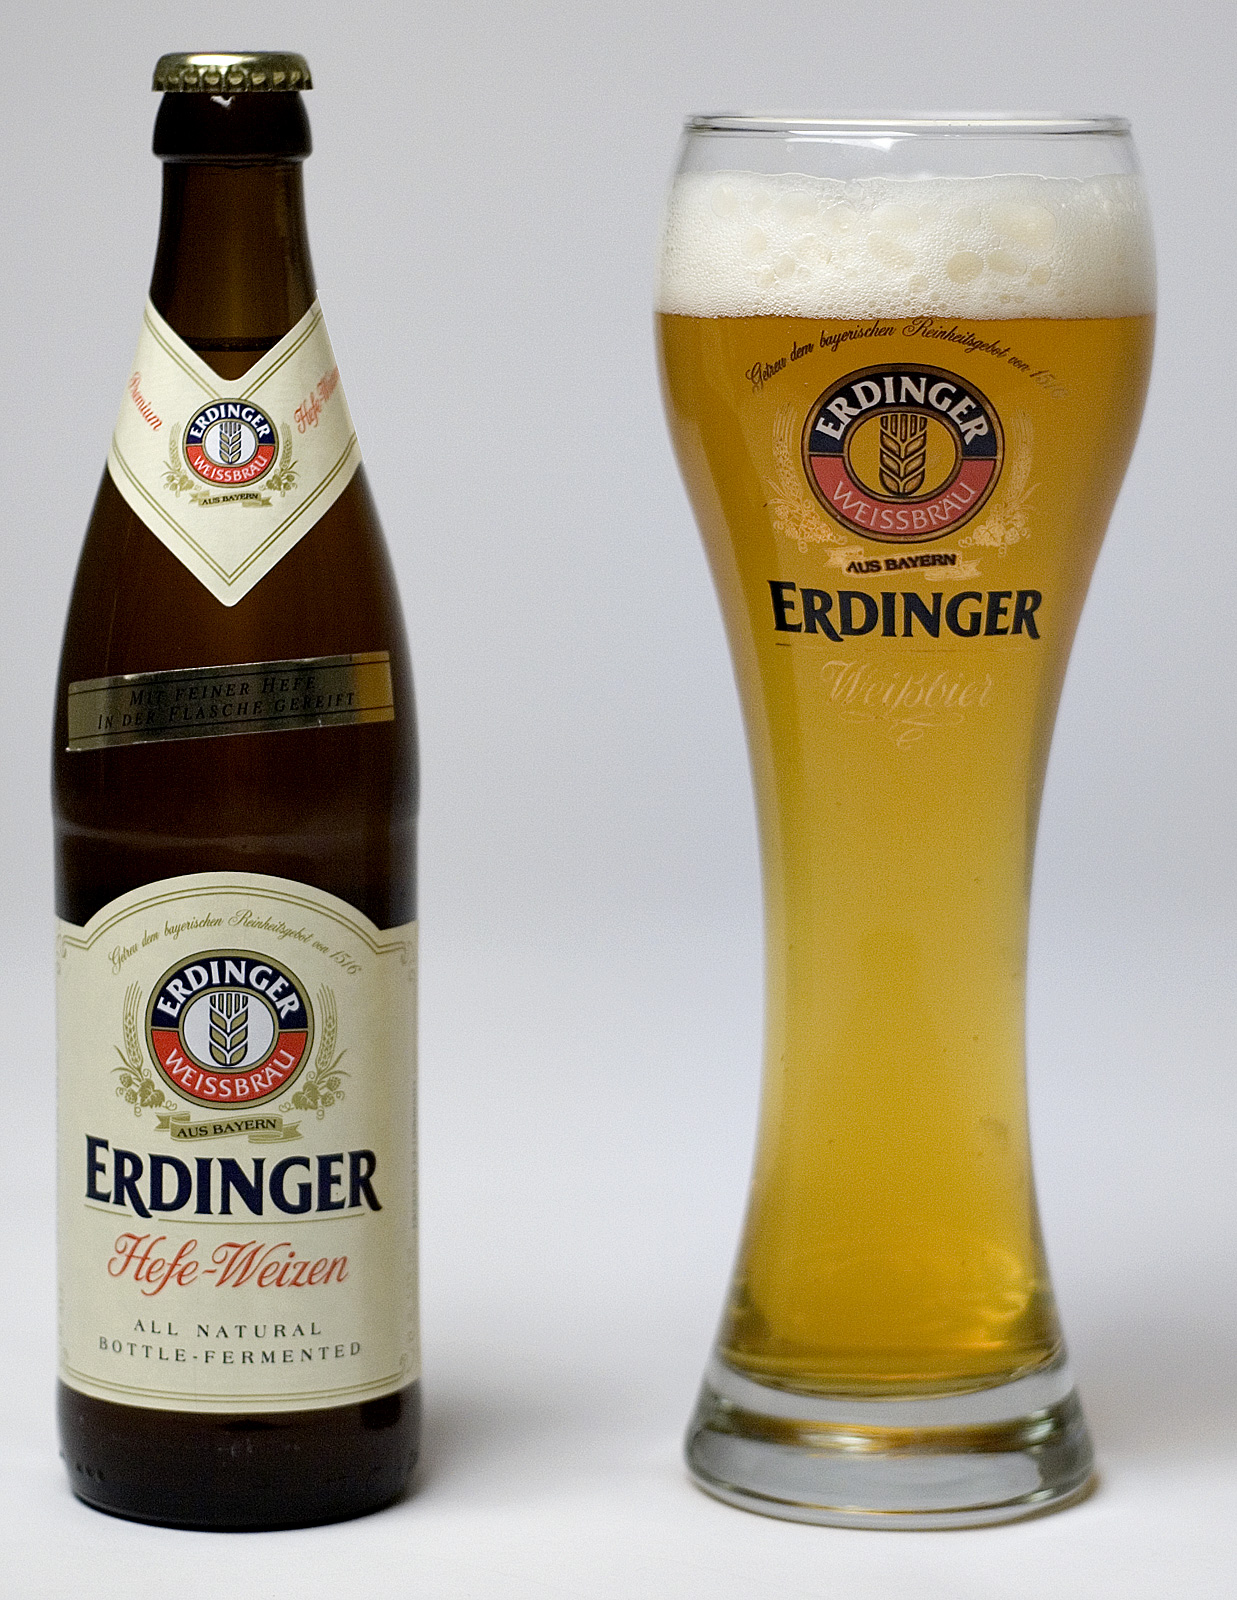 Erdinger-bottle-glass_RMO.jpg